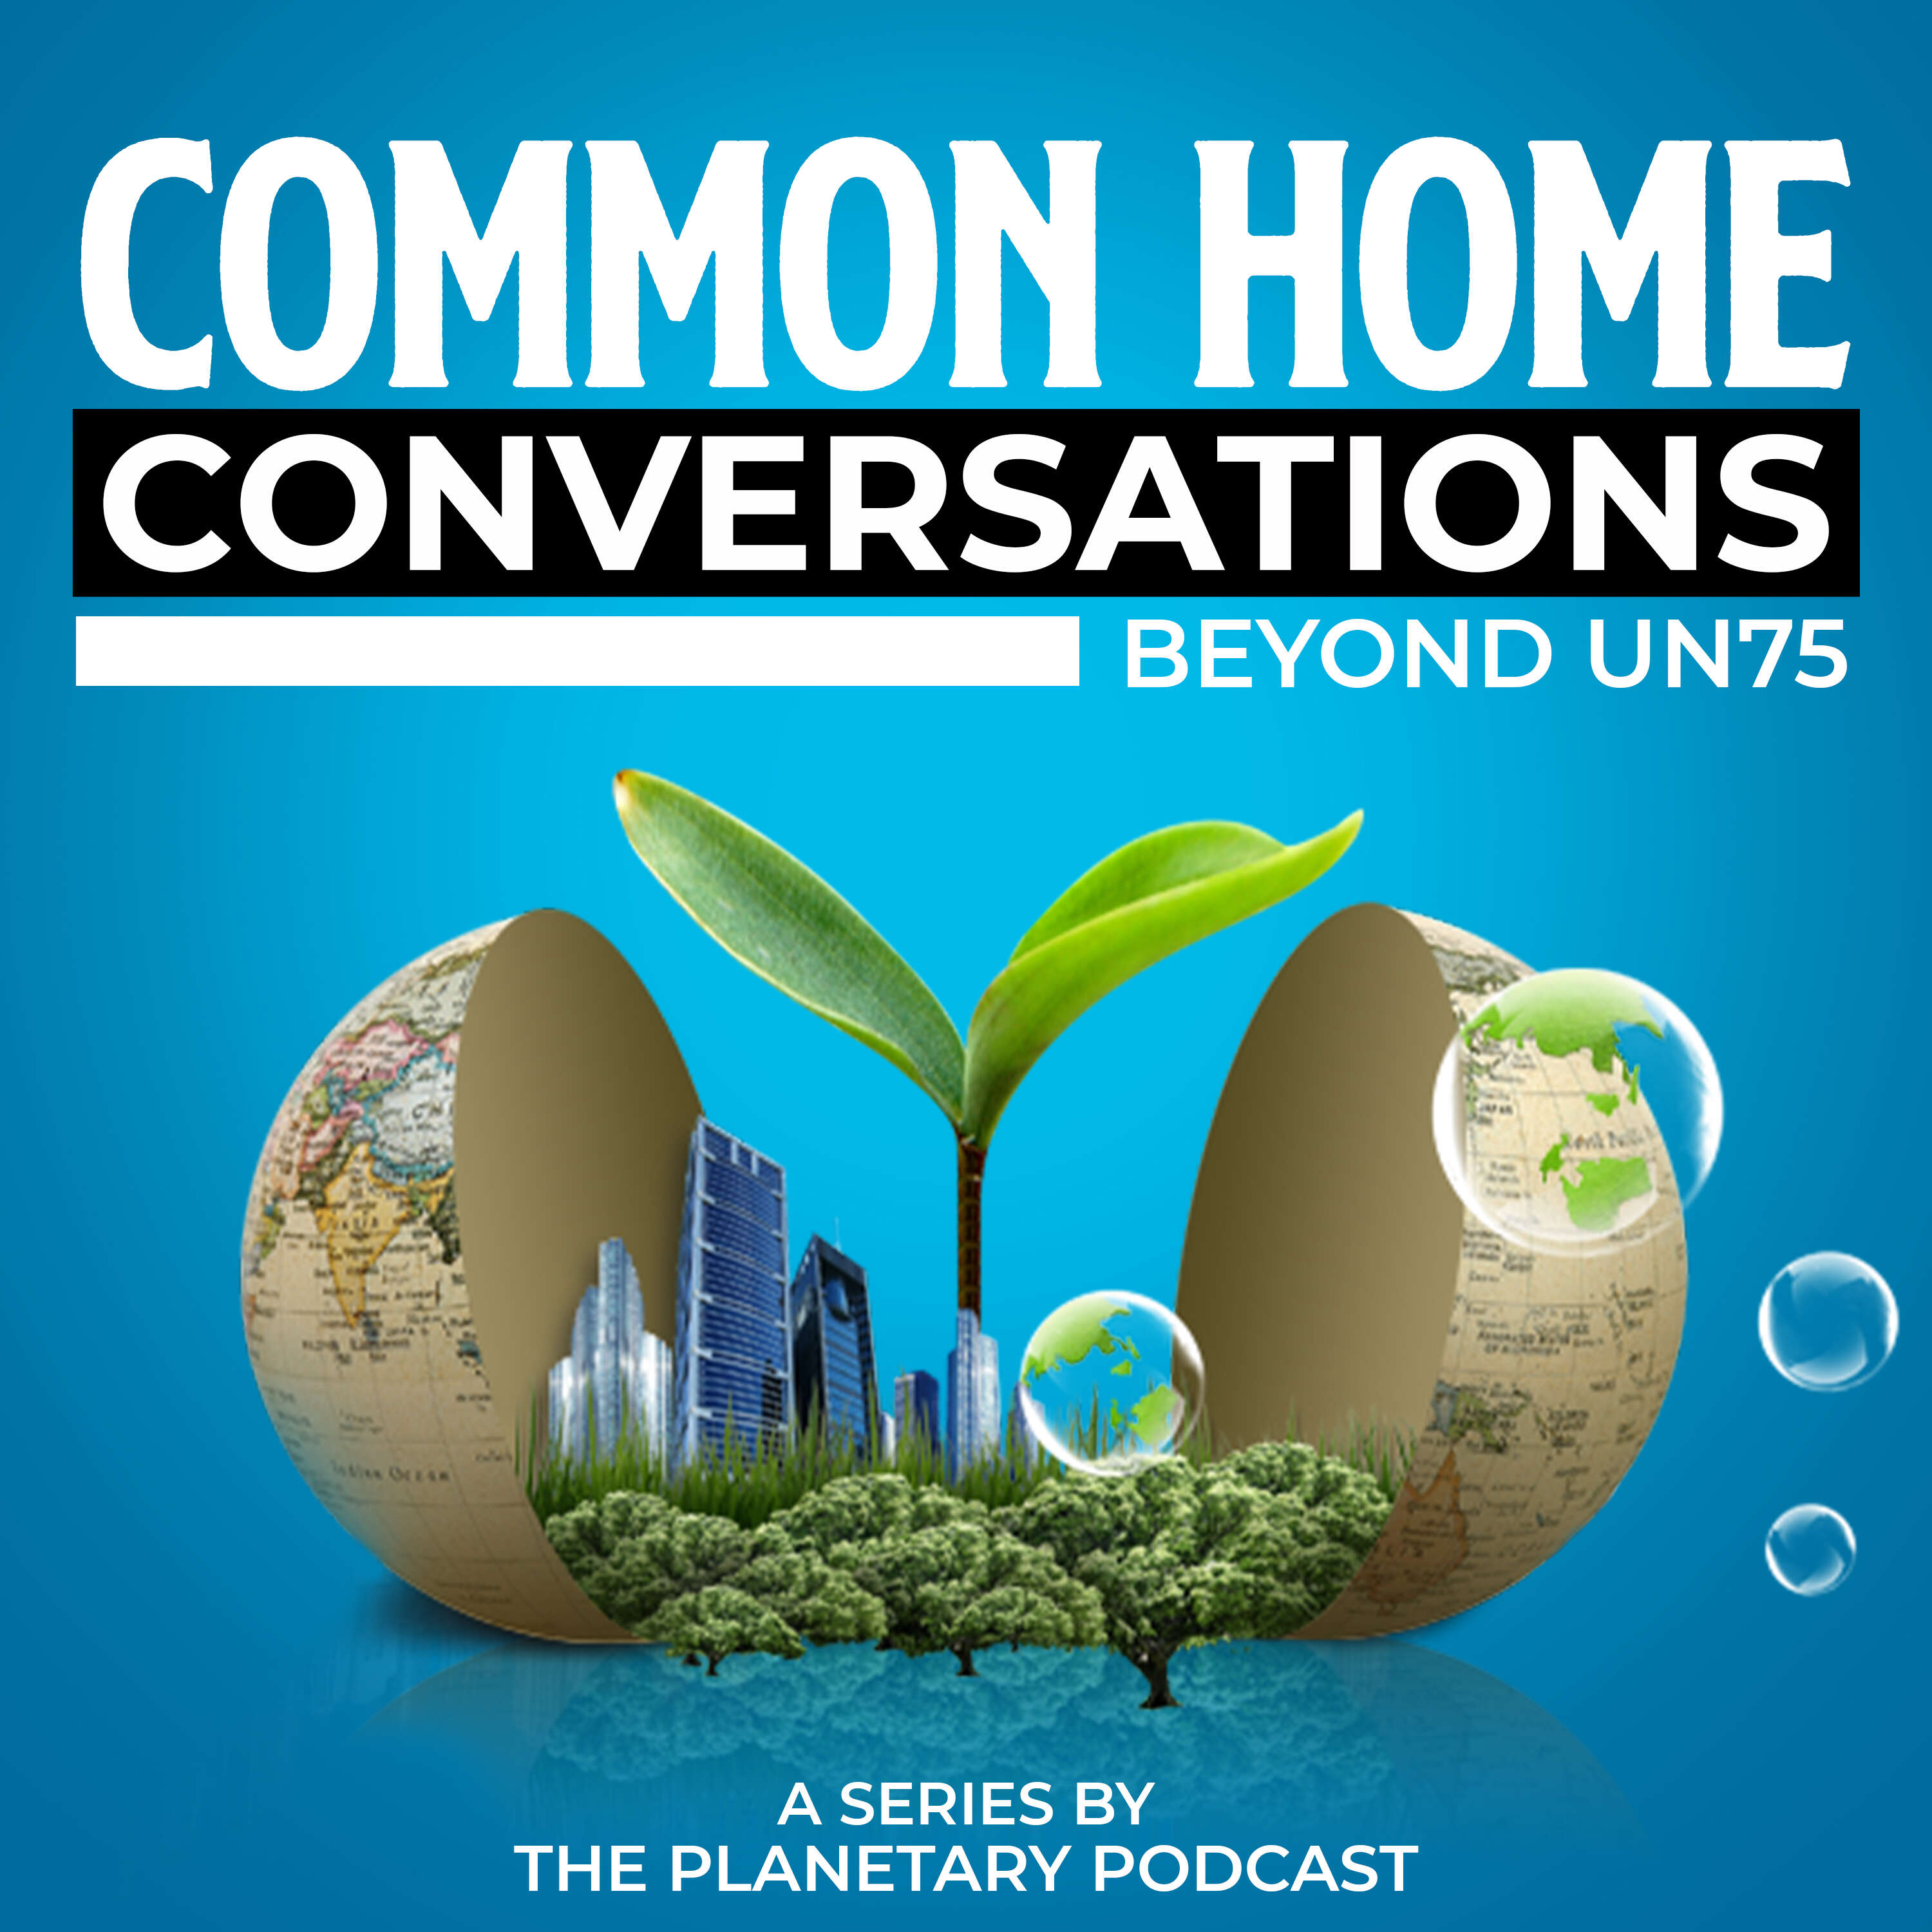 Common Home Conversations Beyond UN75 Series Trailer